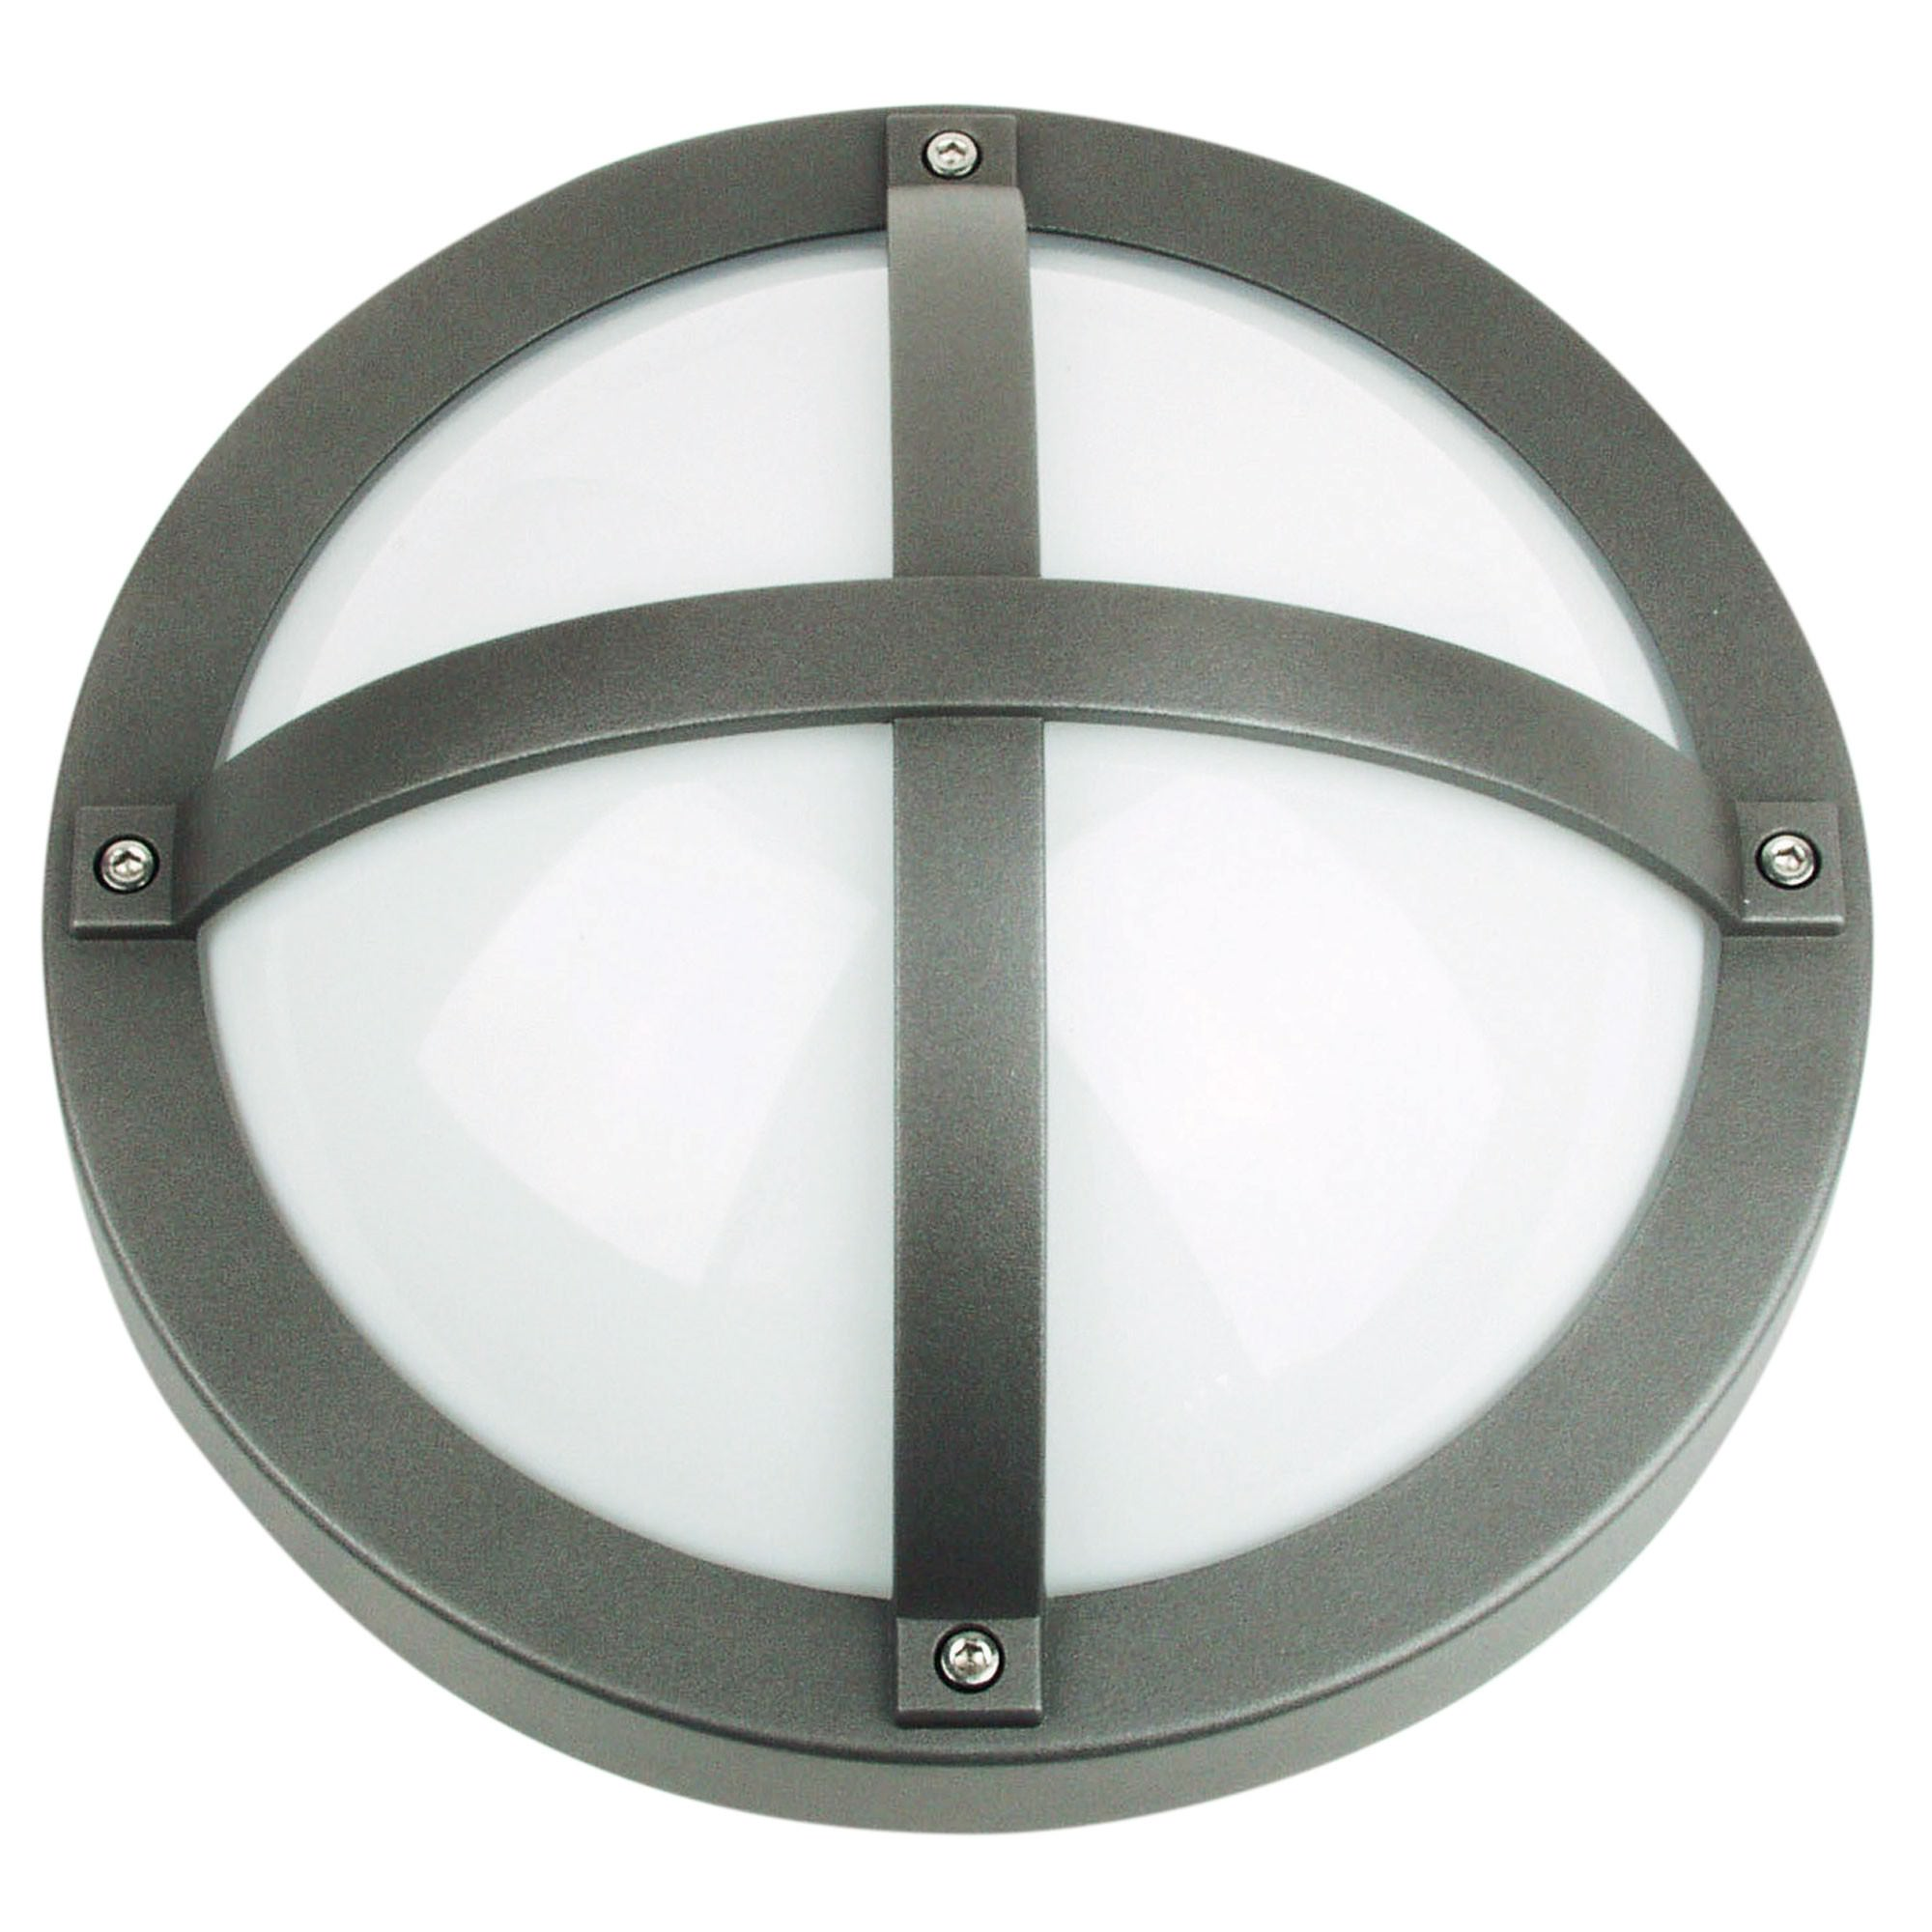 Solo IP65 Commercial Grade Exterior Bunker Wall Light, Graphite